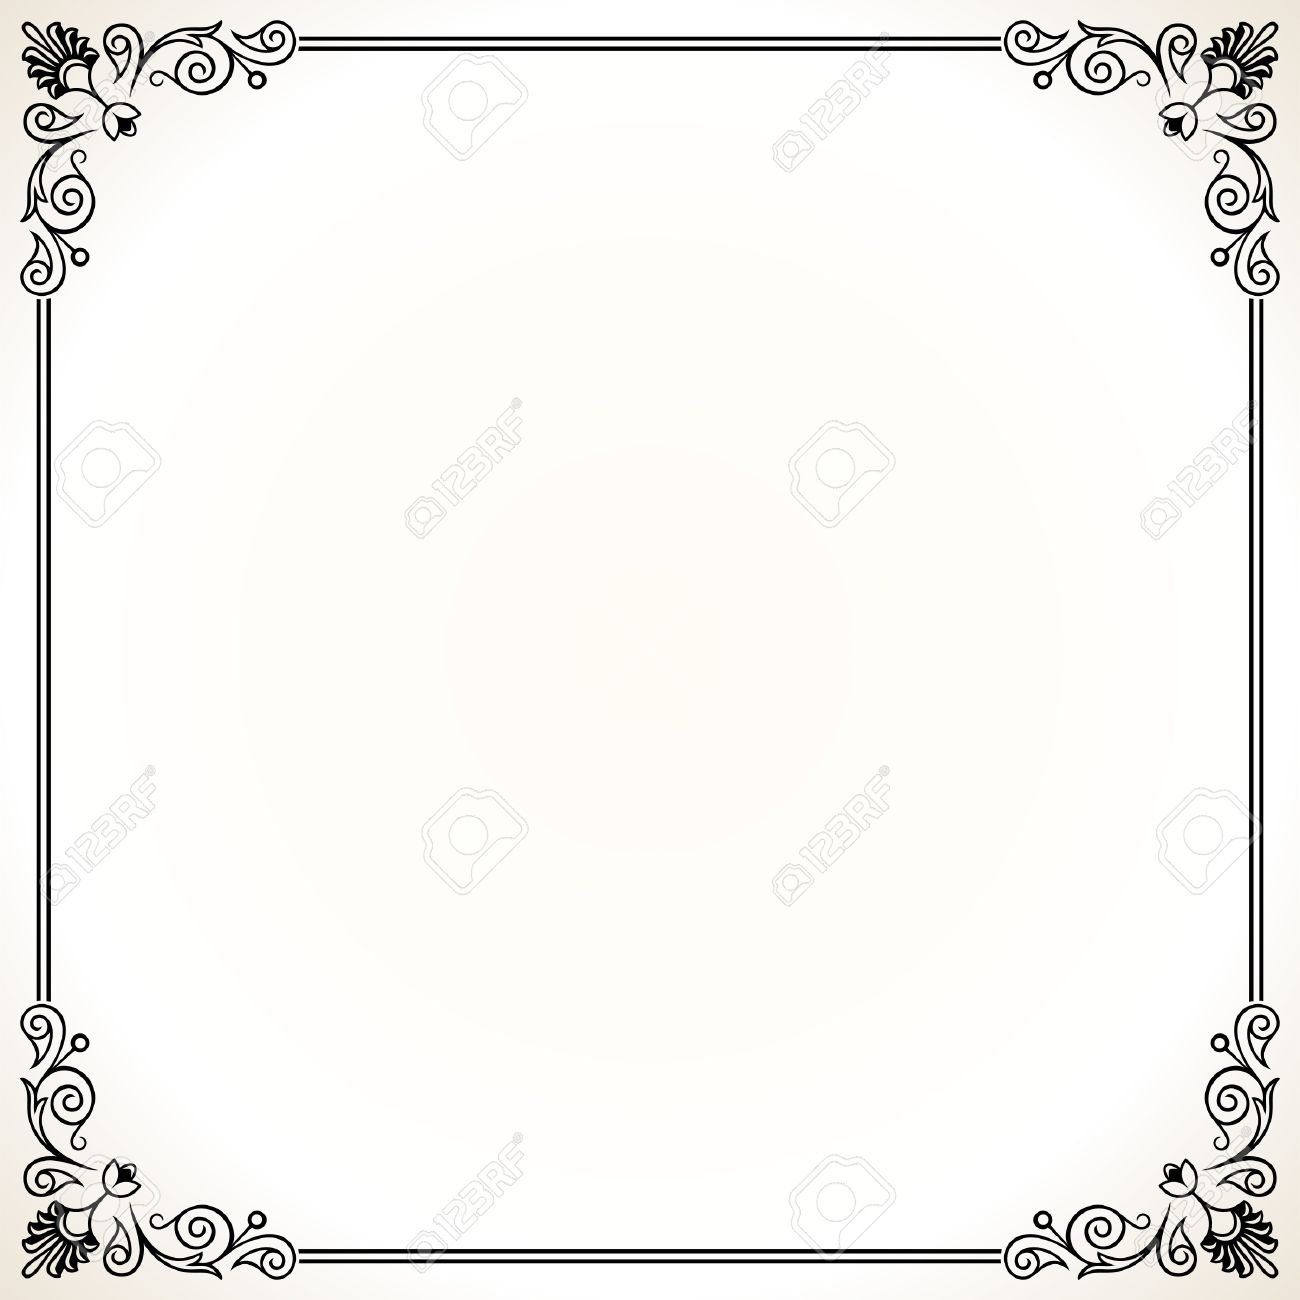 Elegance Frame On White Royalty Free Cliparts, Vectors, And Stock ...